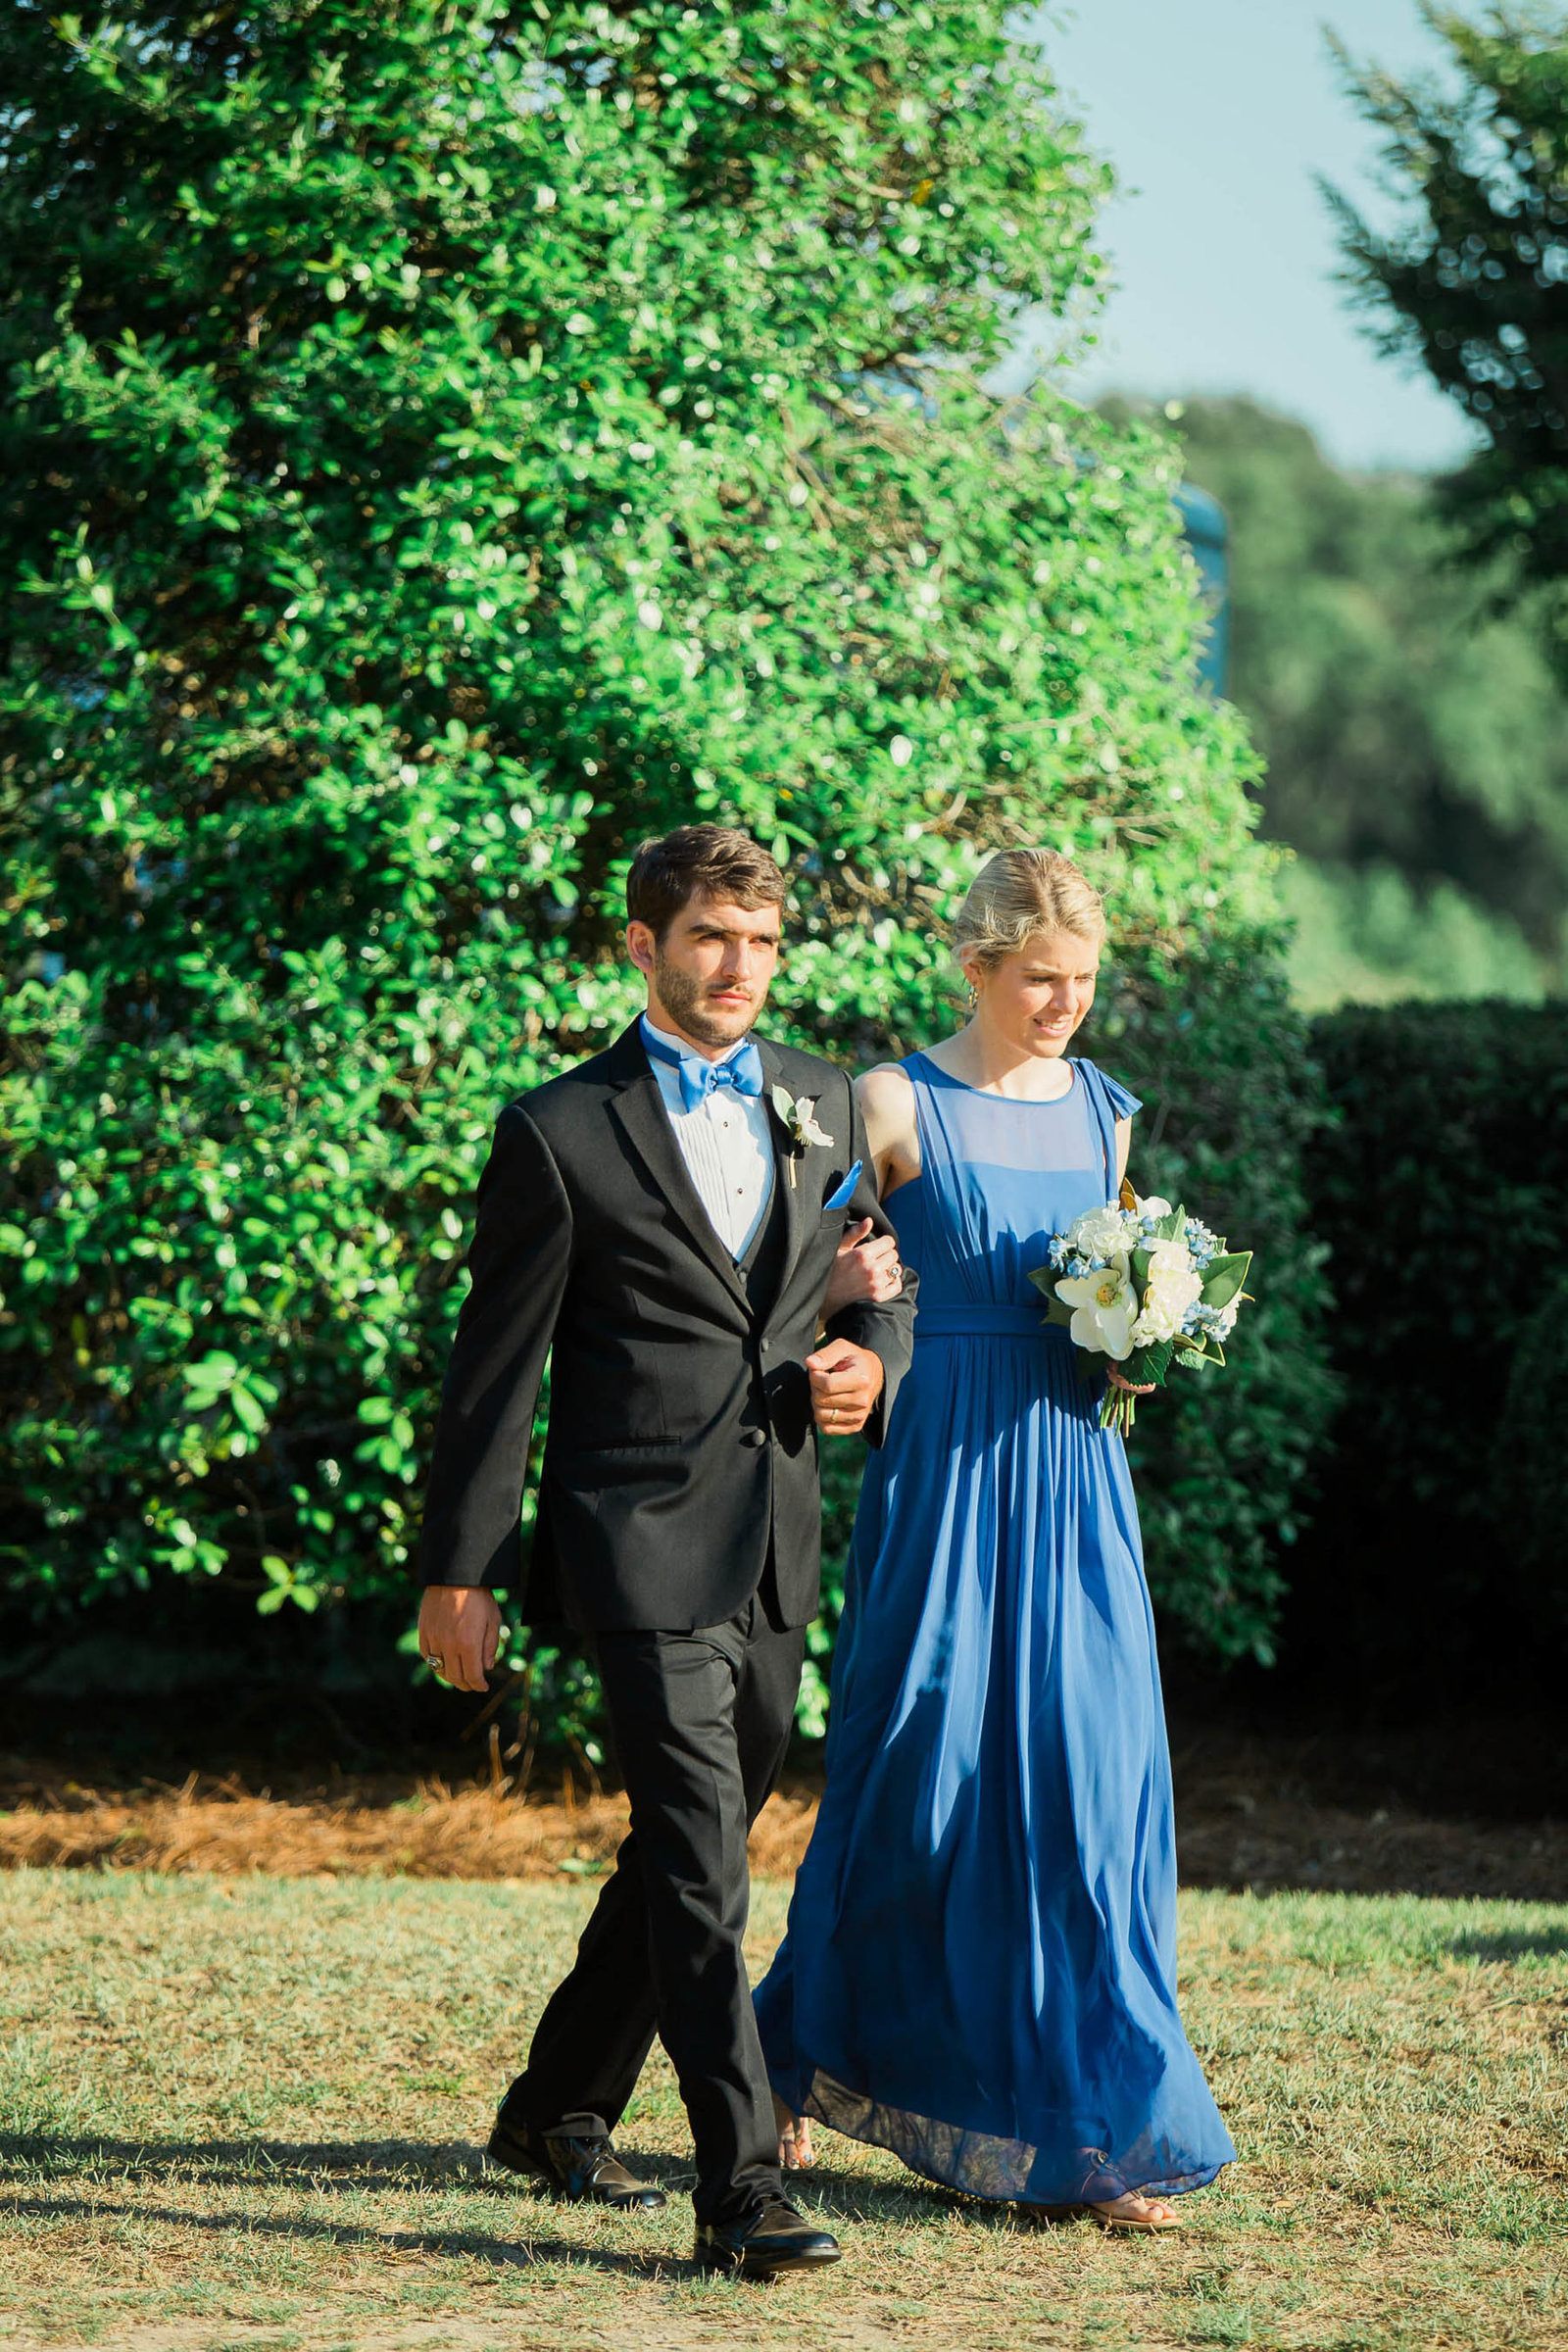 Groomsman and bridesmaid walks down the aisle, Oakland Plantation, Mt Pleasant, South Carolina